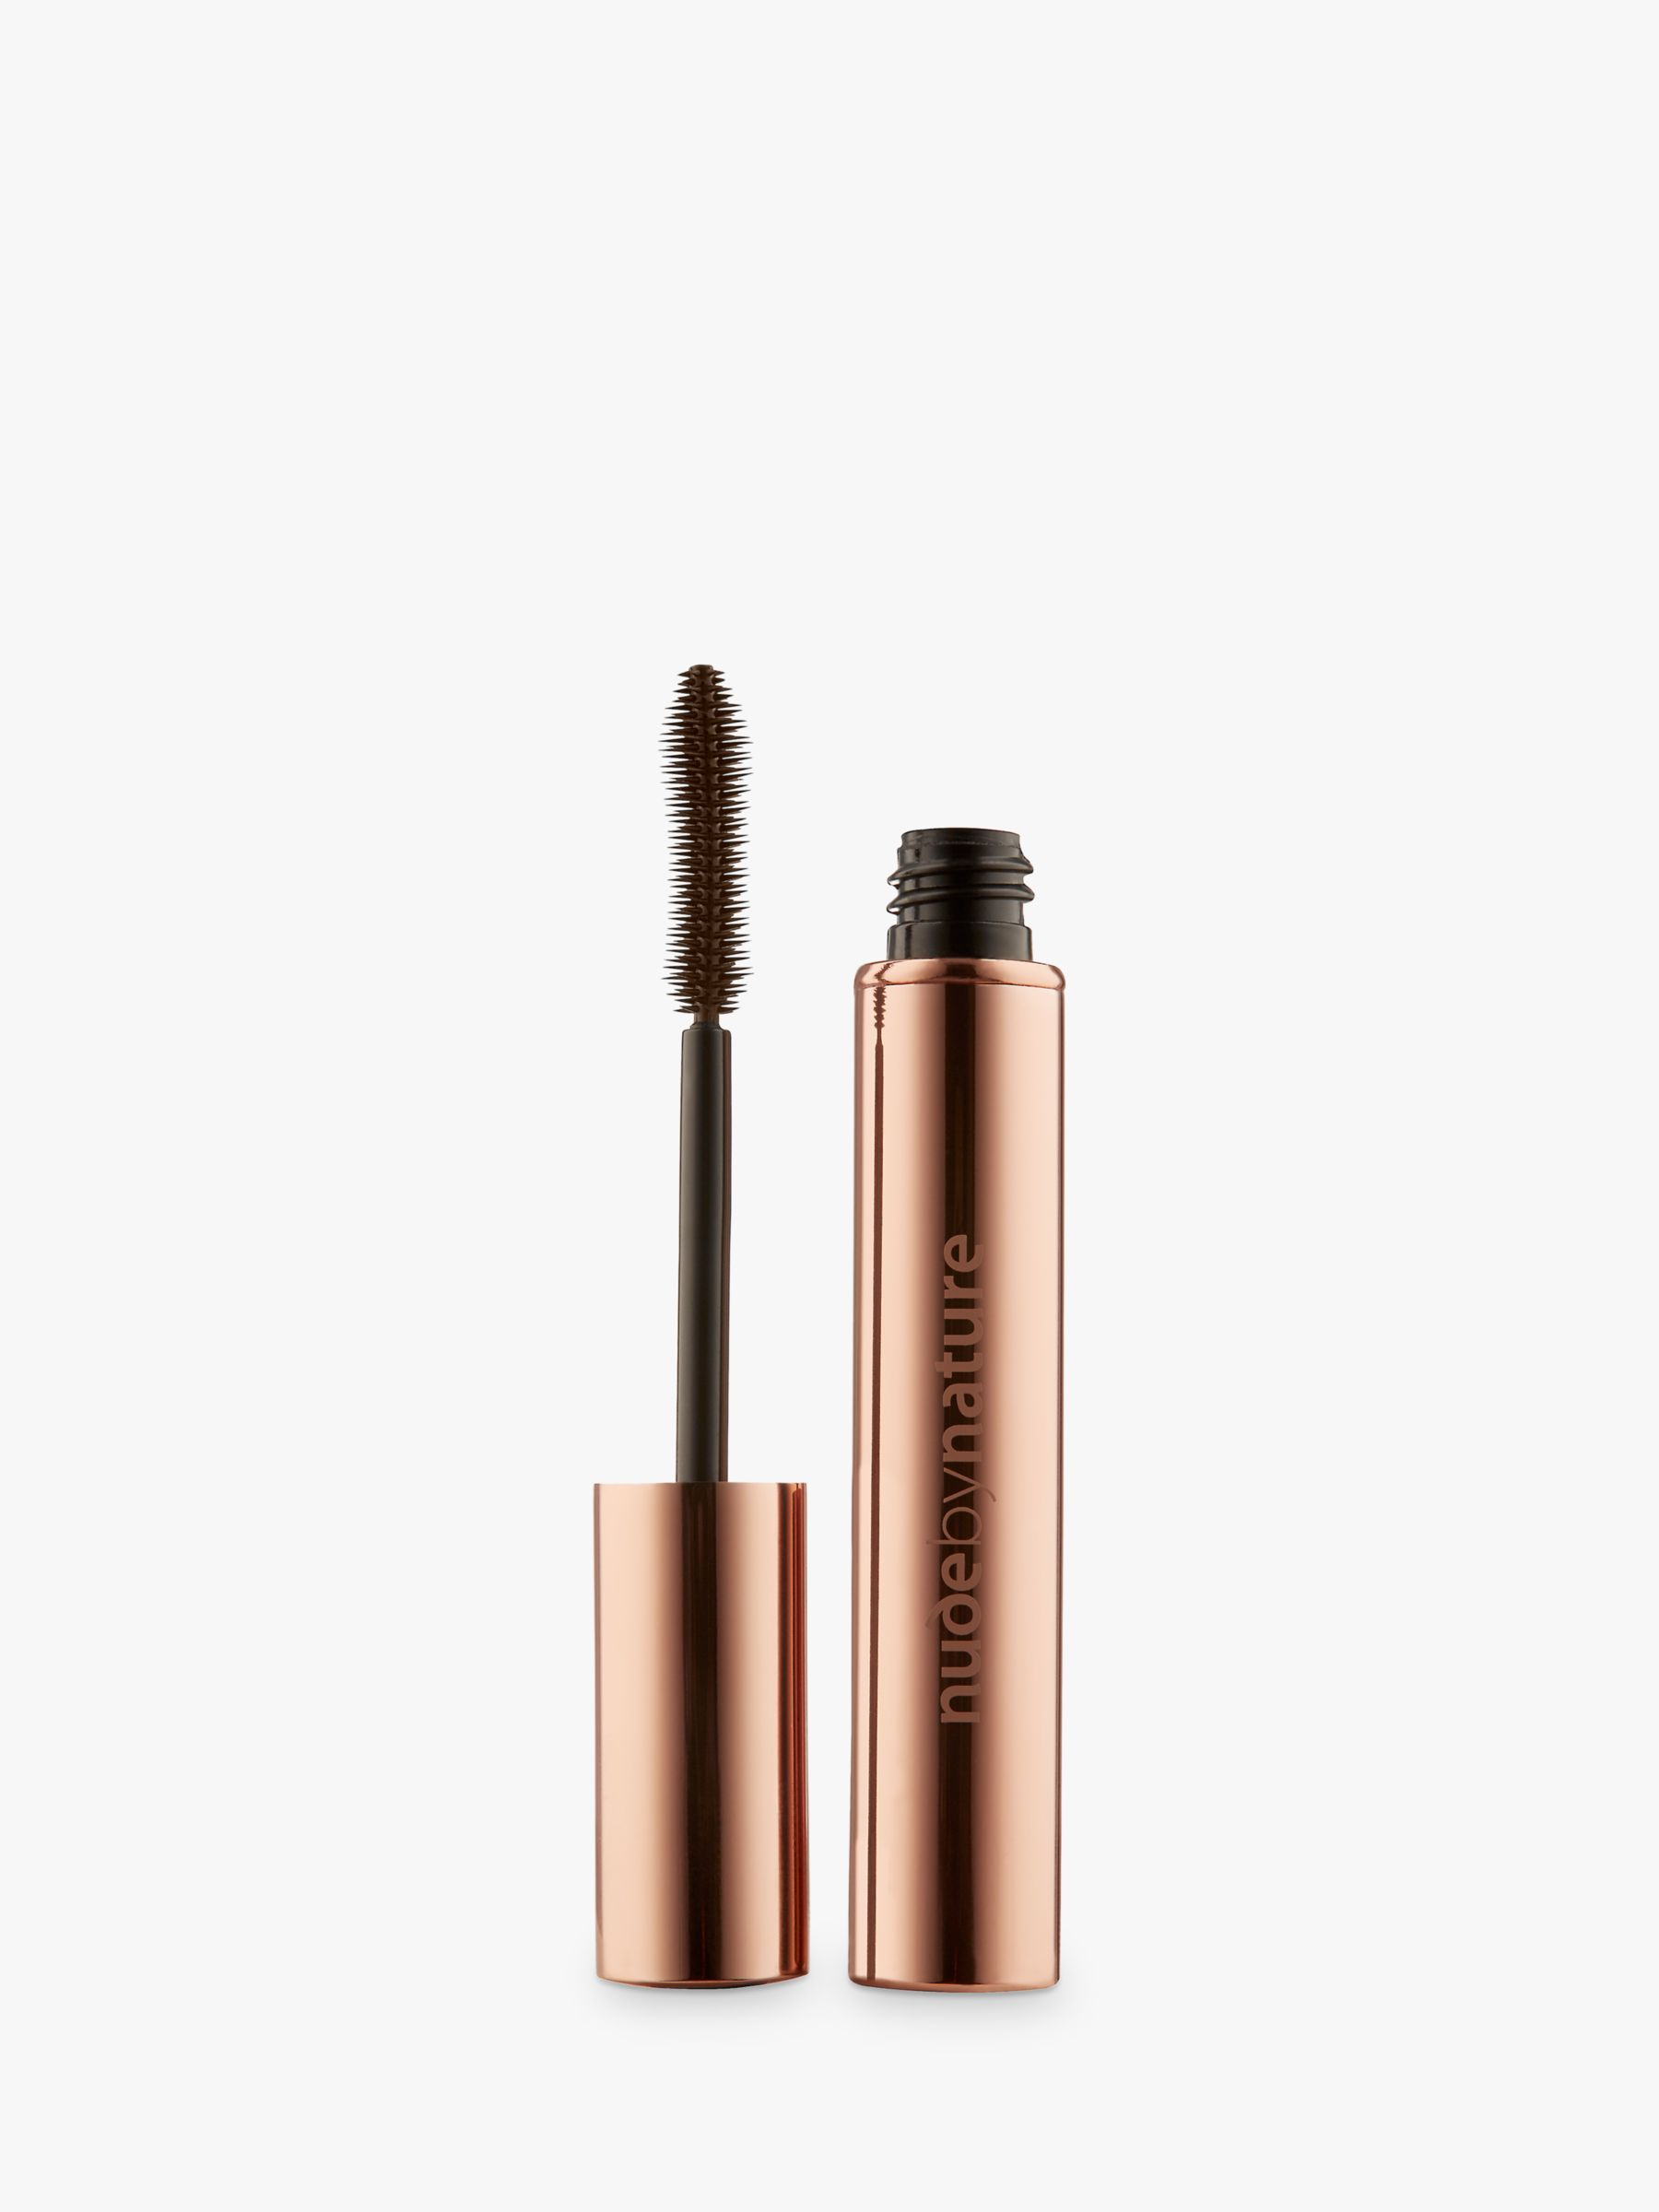 Nude by Nature Nude by Nature Allure Defining Mascara